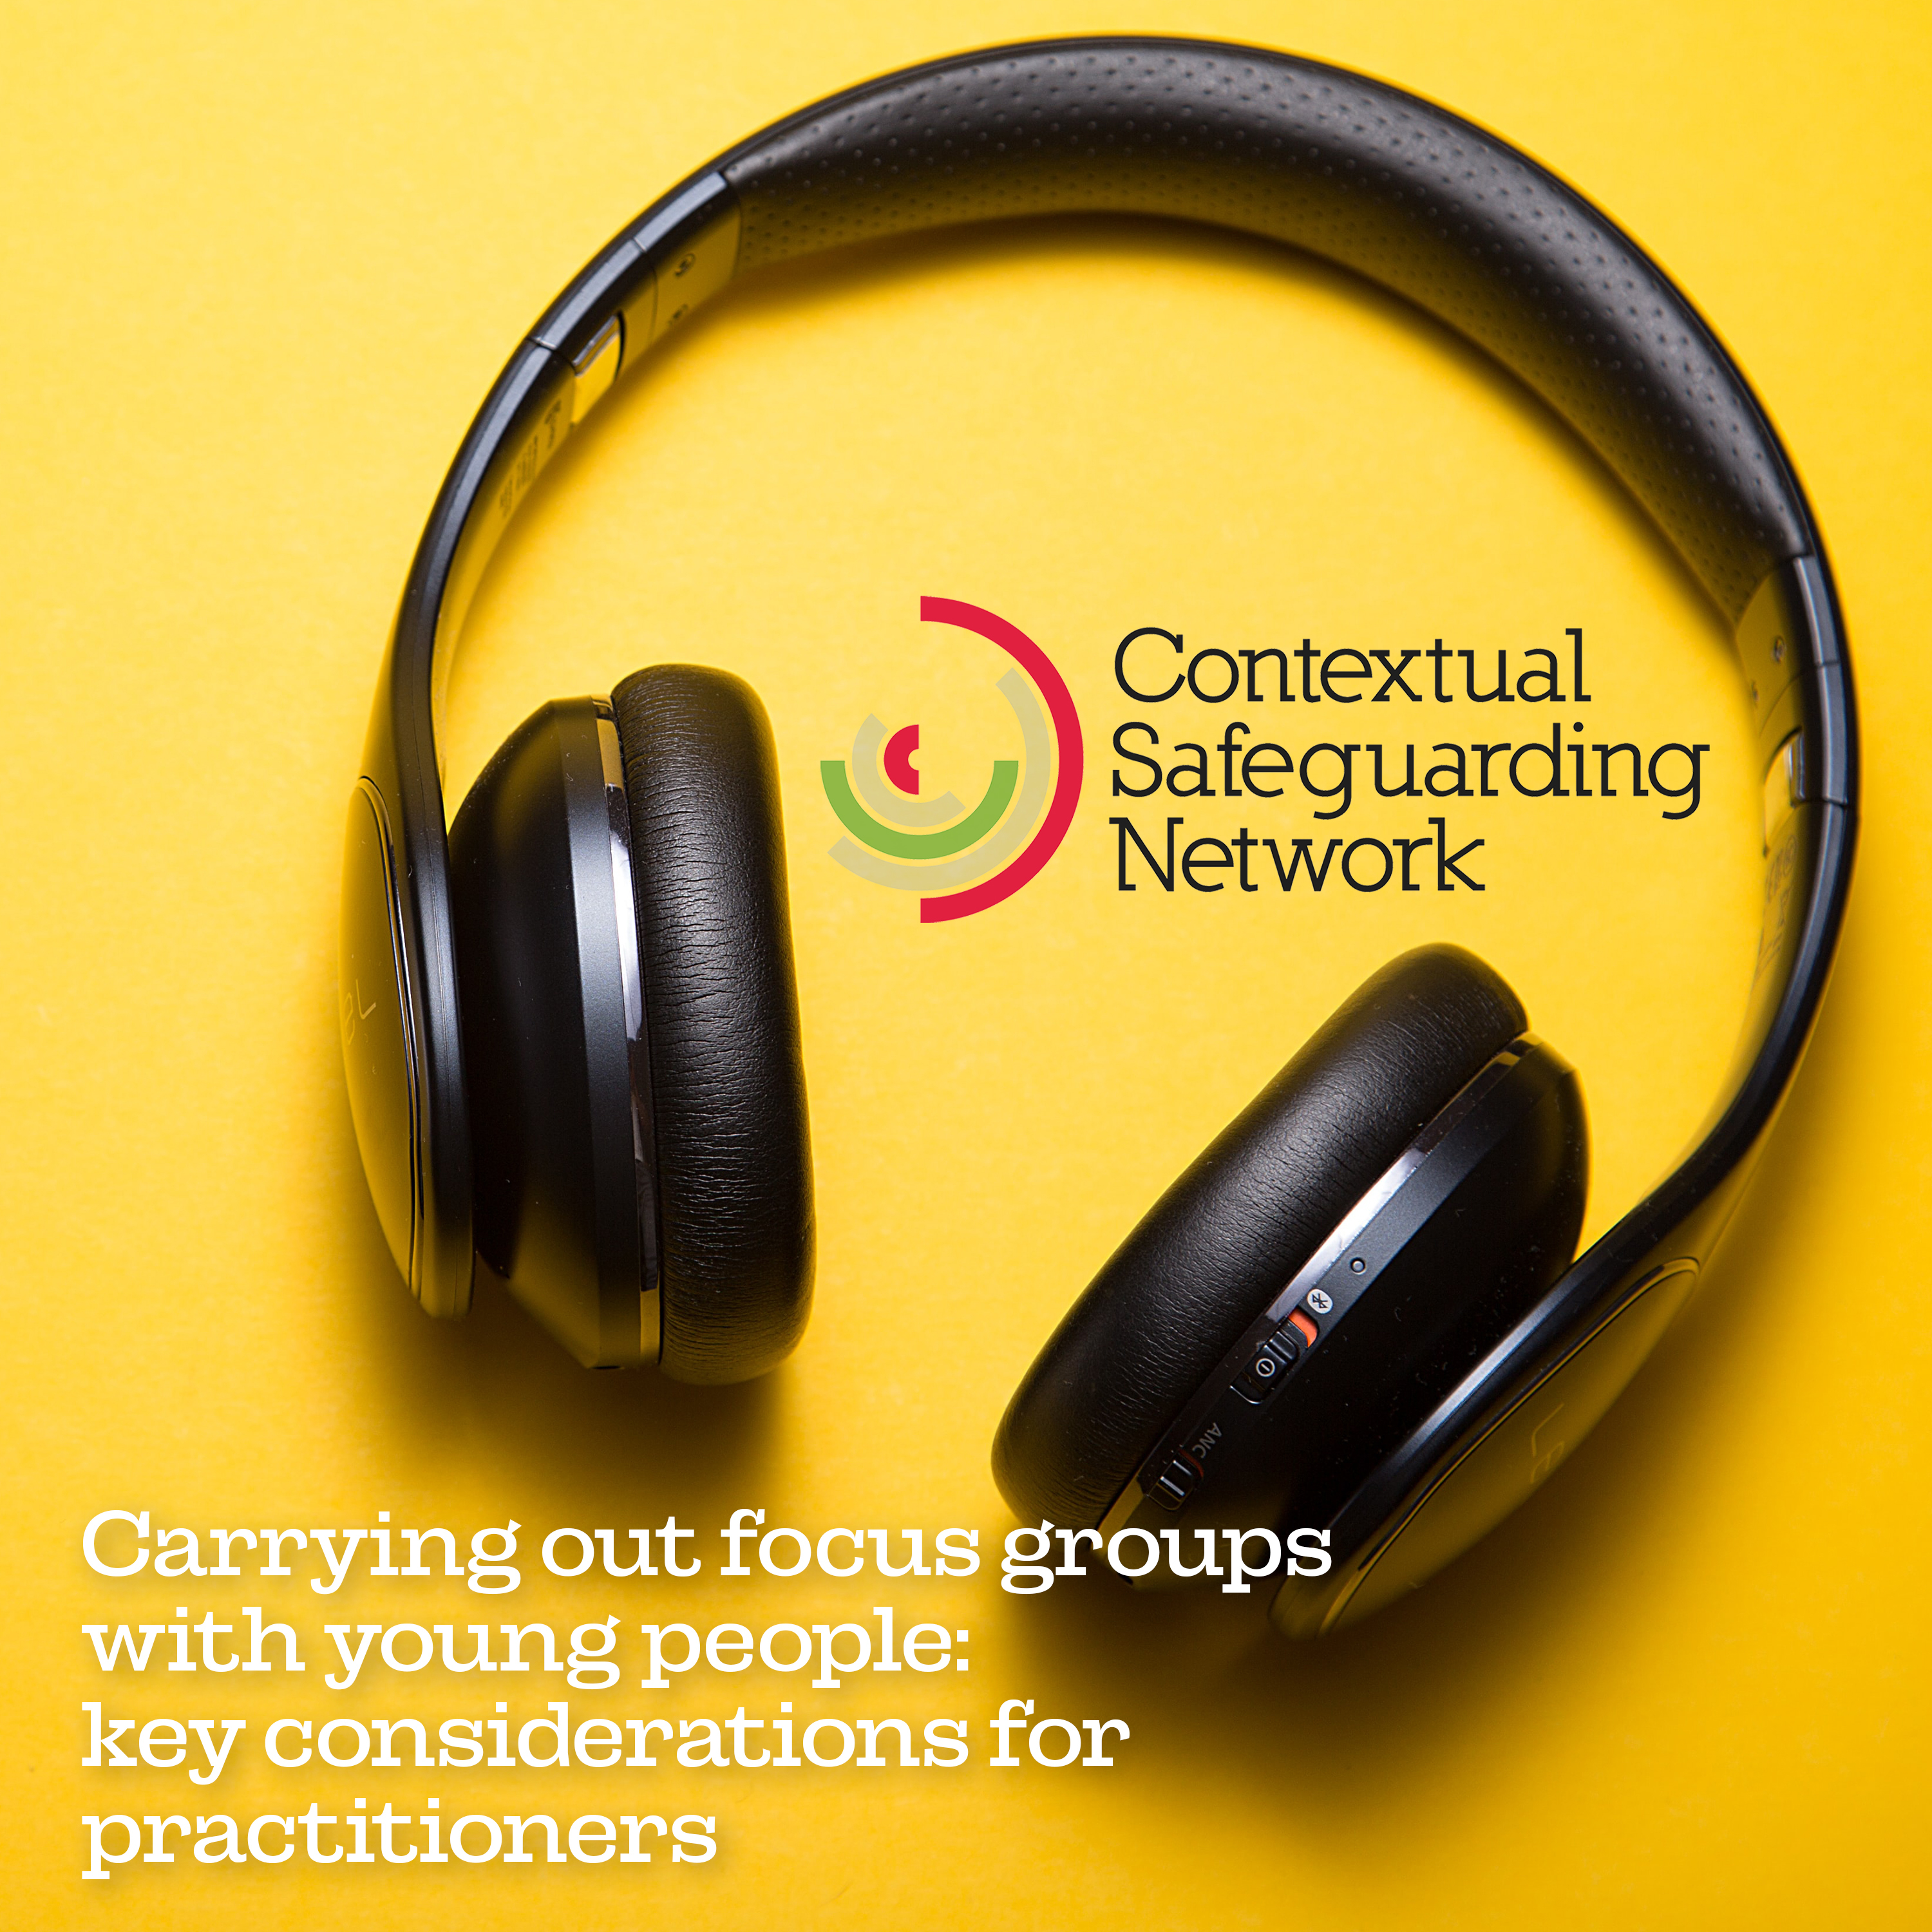 Carrying out focus groups with young people: key considerations for practitioners